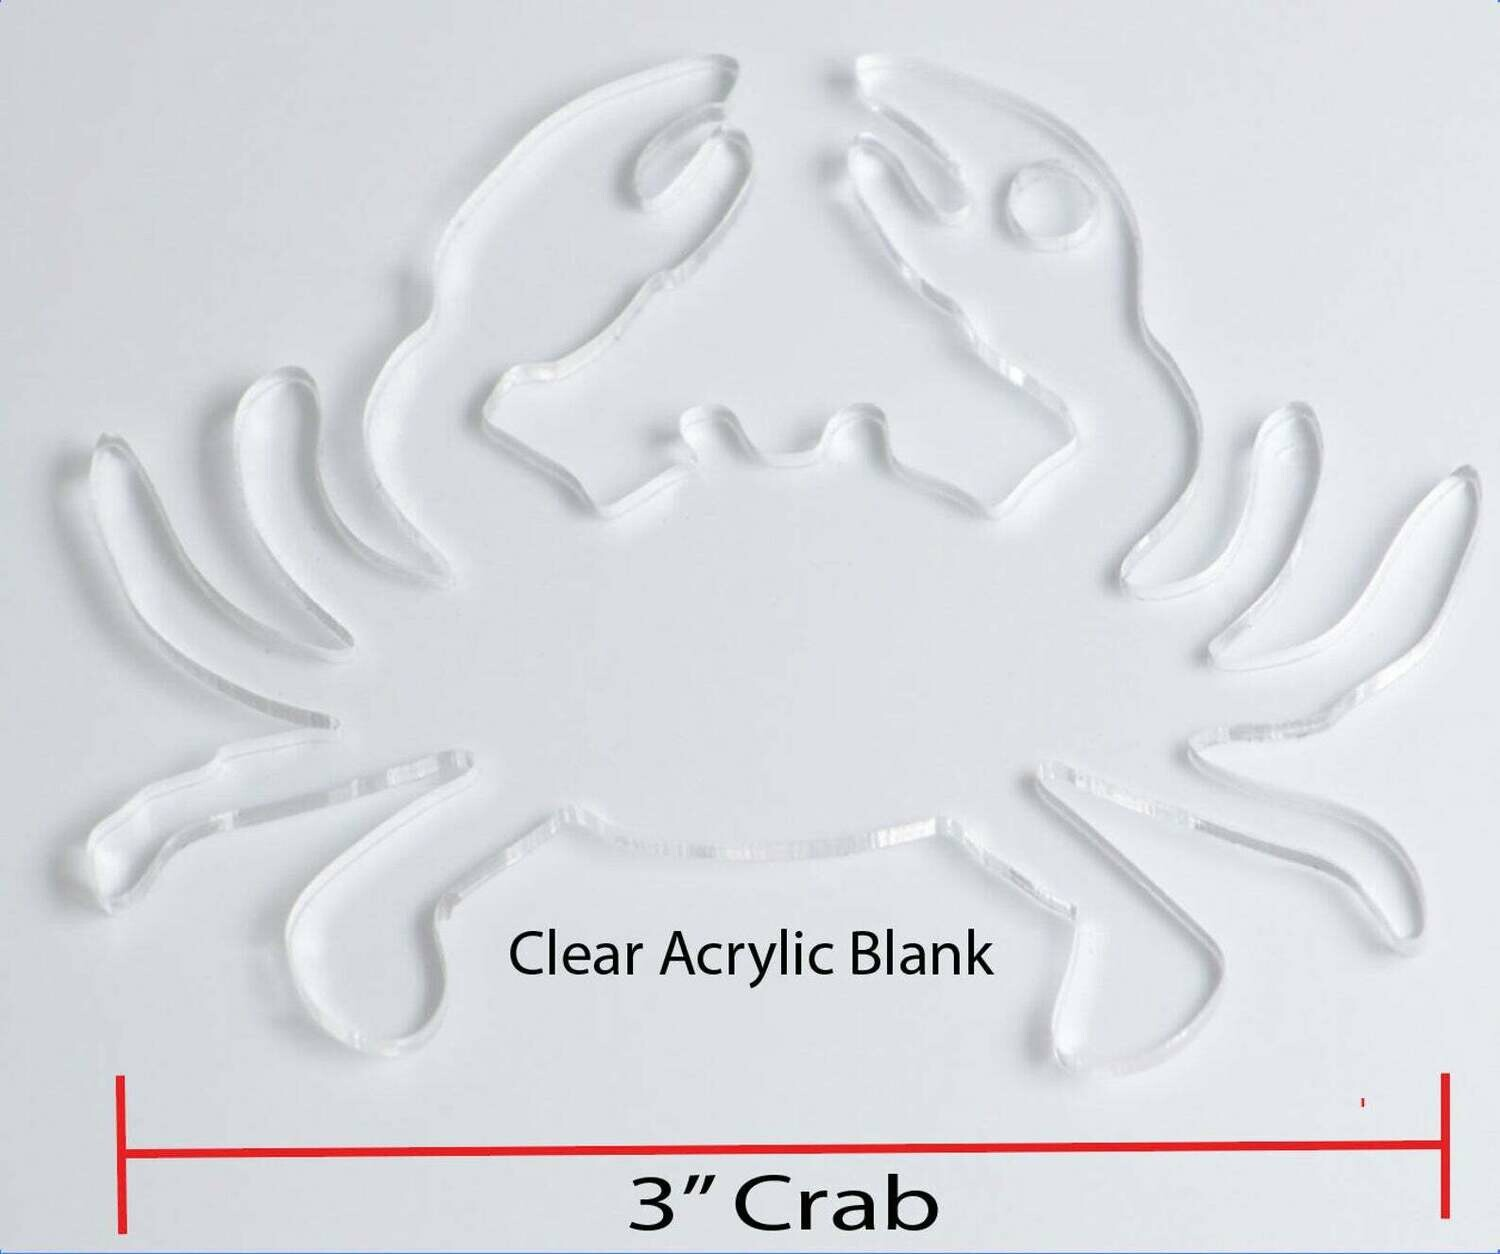 100 Laser Cut clear acrylic Crab shape  Blank  Smooth Edge Transparent Plexiglass Circles 1/8 inch (3 mm) with or without Holes DIY Crafts